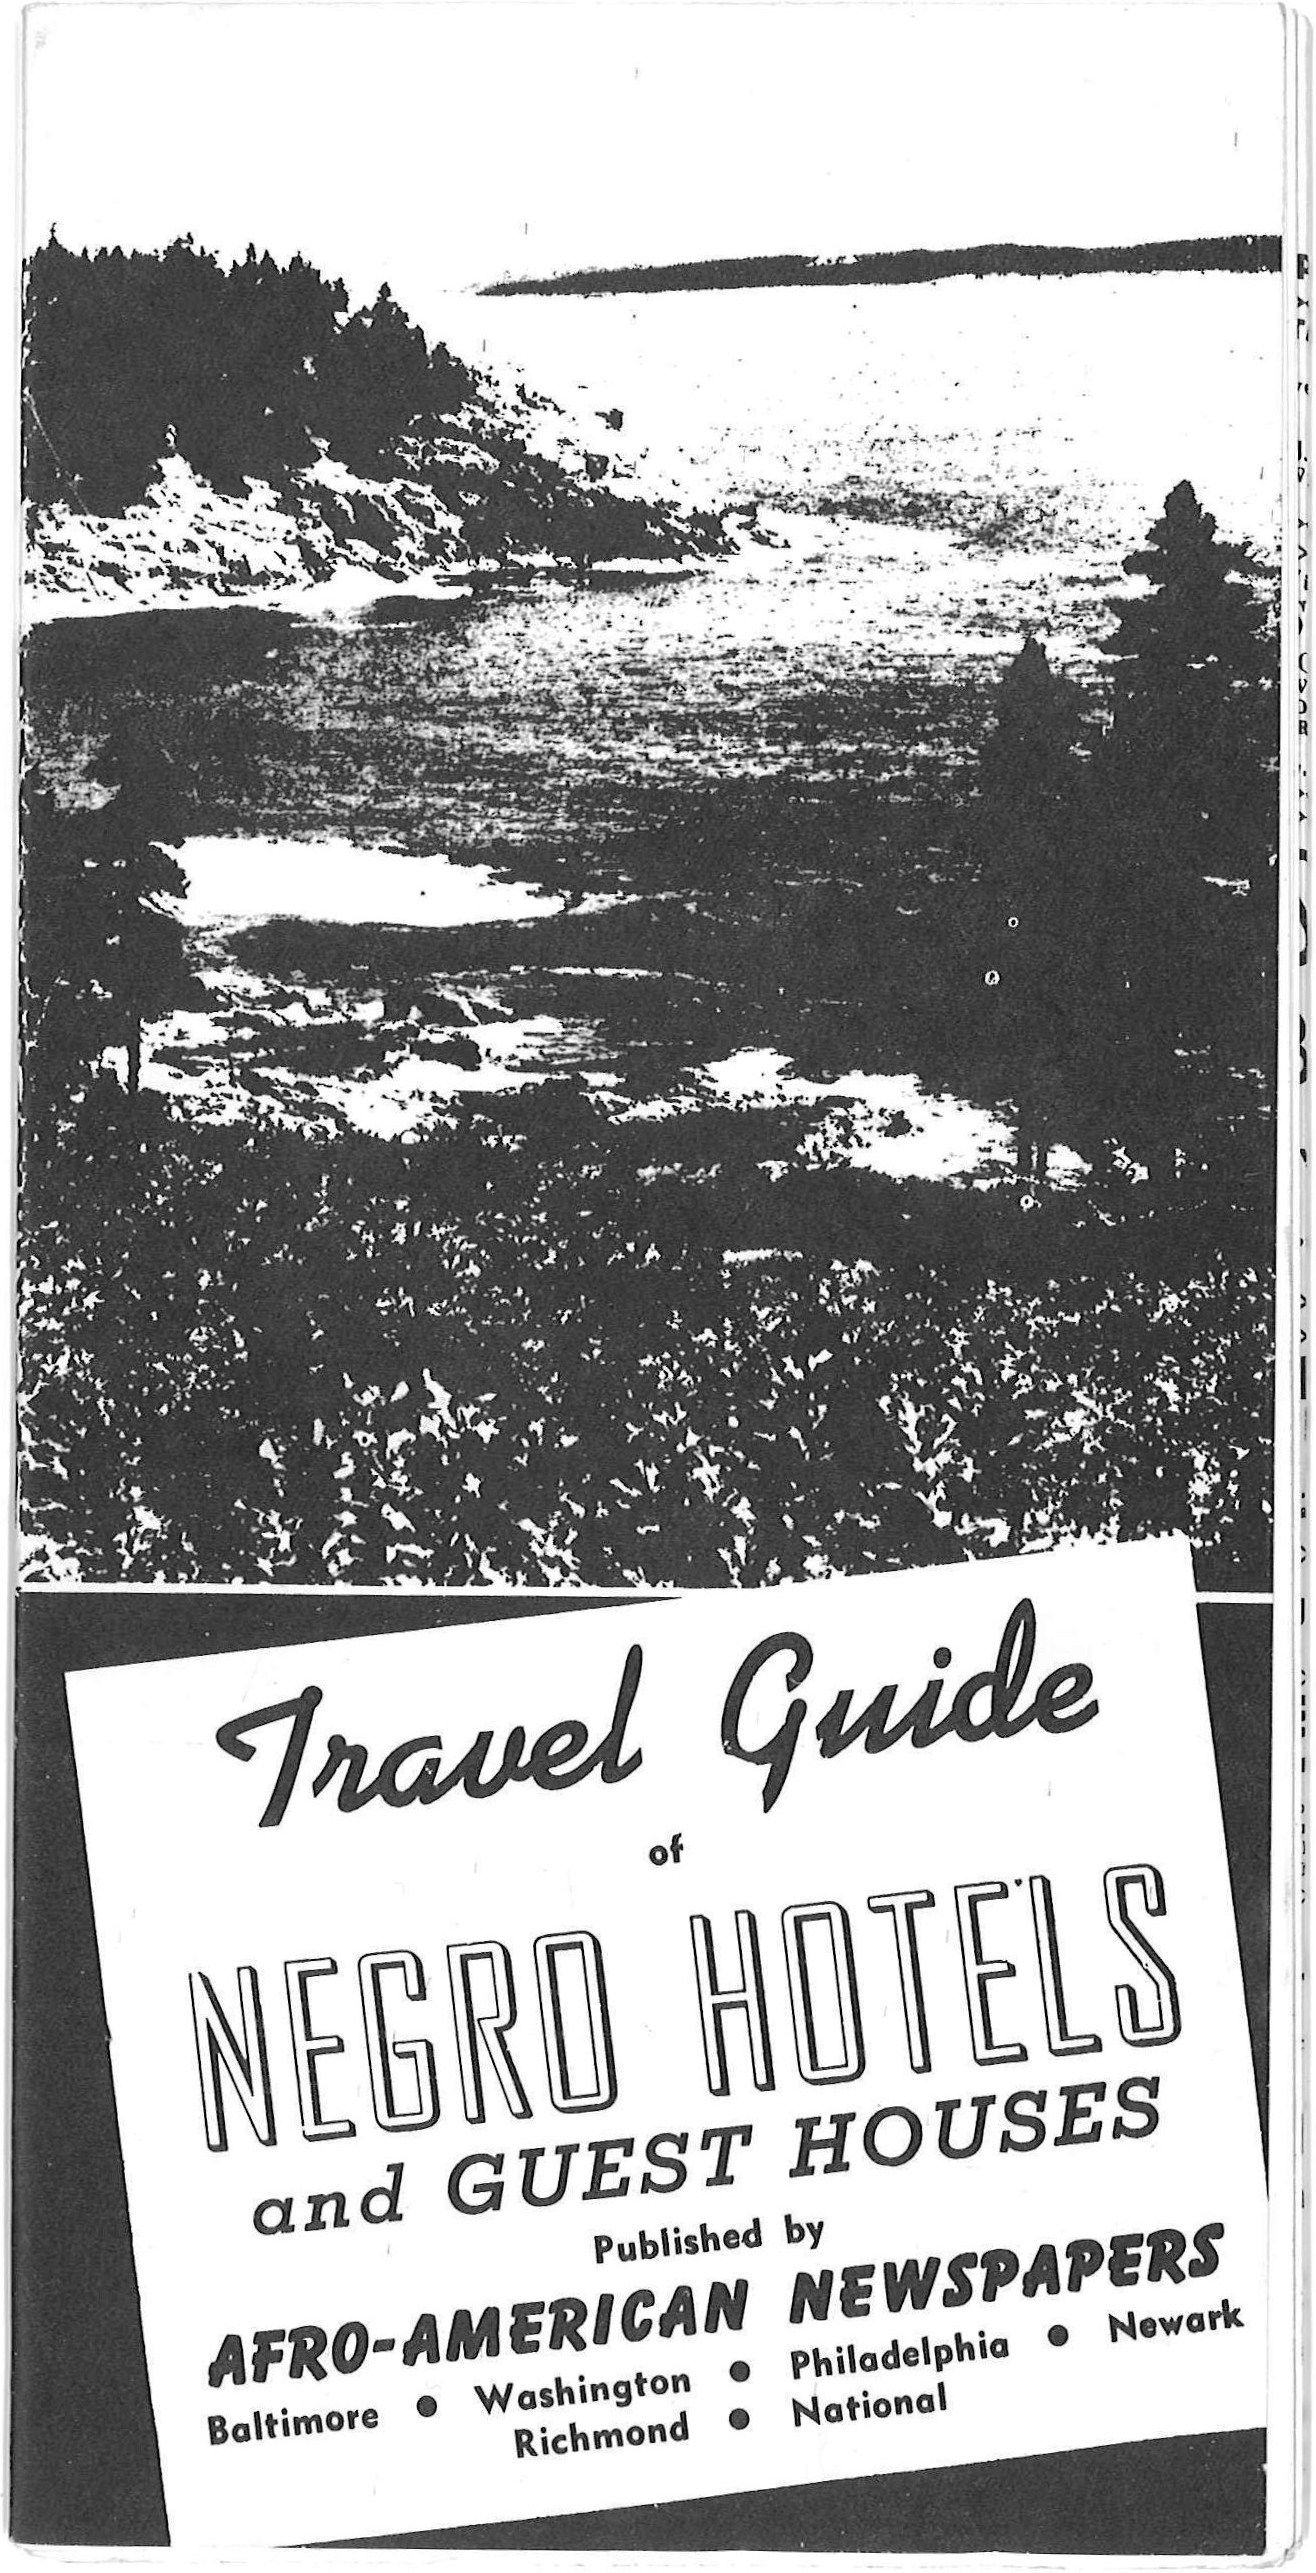 "This image is a copy of publication from 1942, ""Travel Guide of Negro Hotels and Guest Houses.,"" which included an ad for the affiliated Afro Travel Bureau in Baltimore, Maryland."